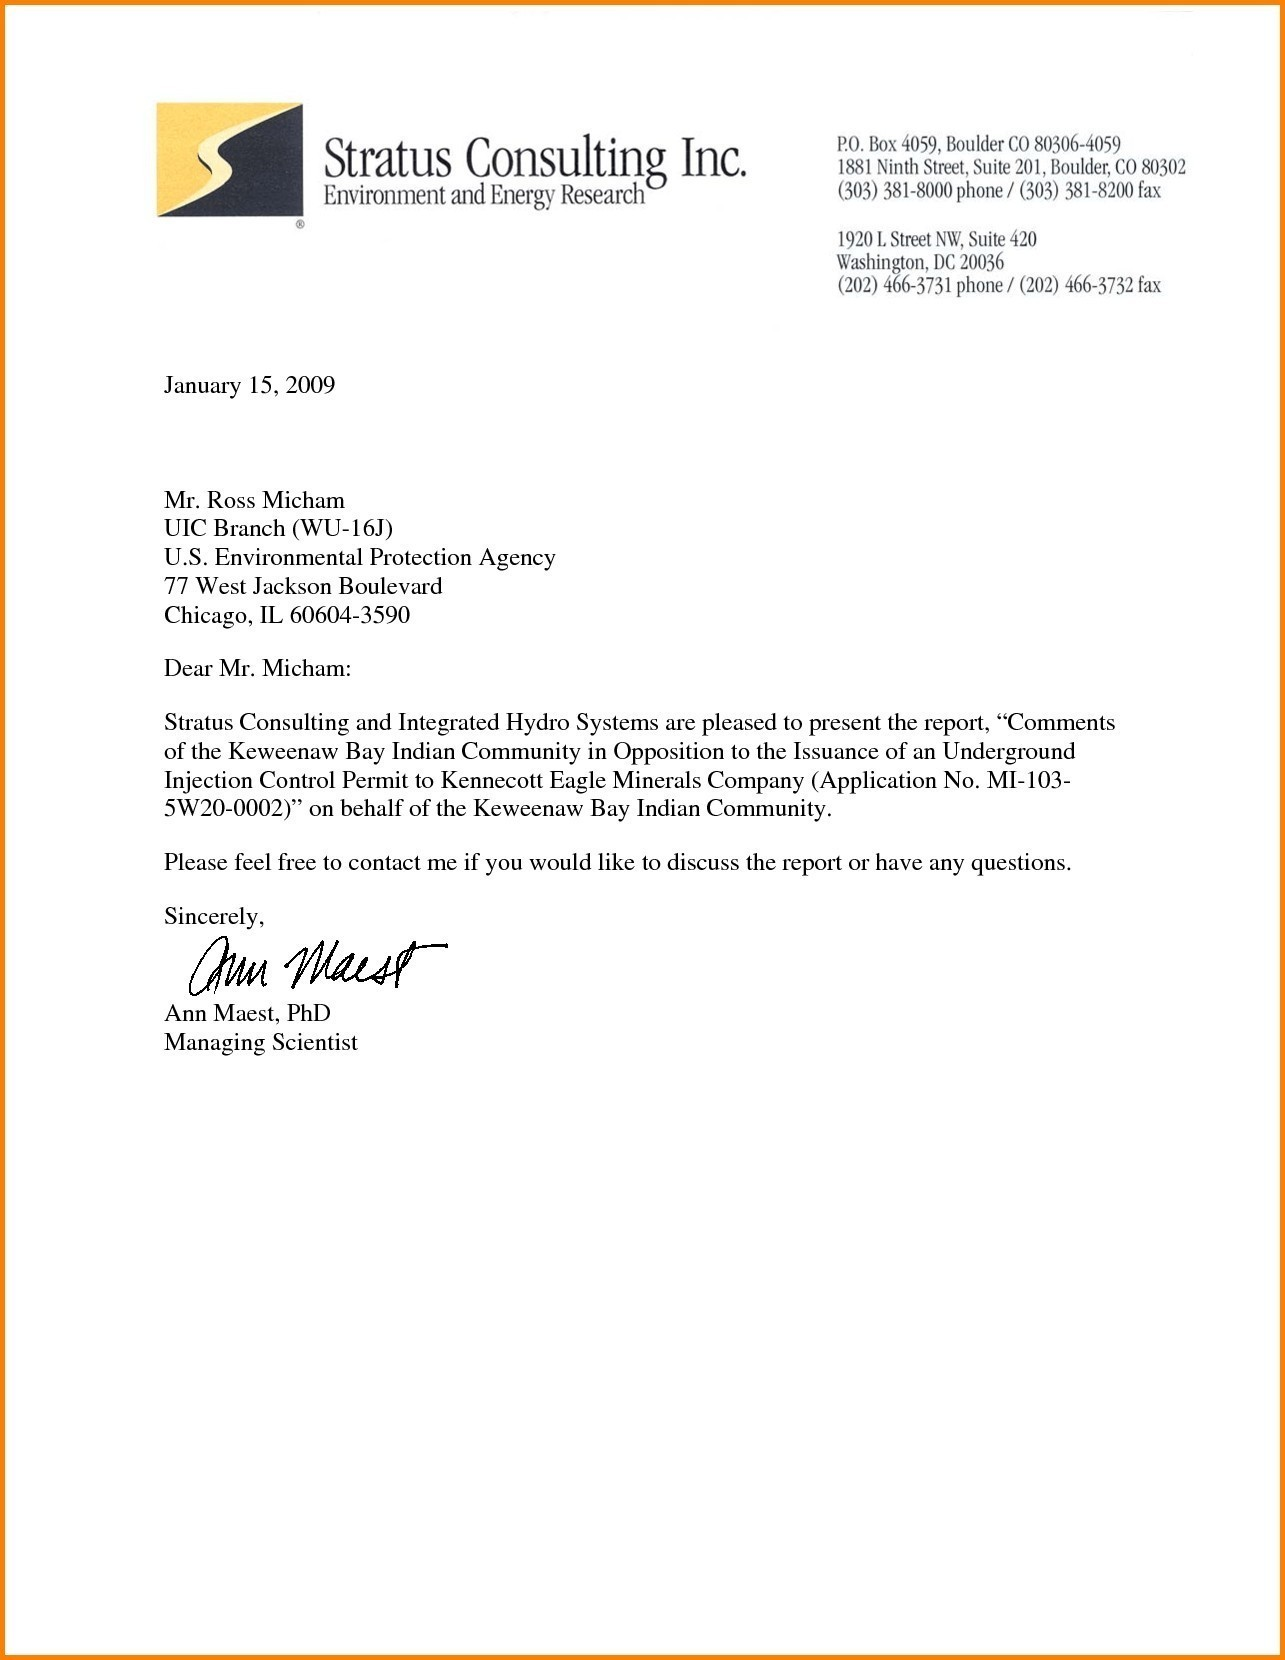 Format Of Business Letter On Letterhead Best Format For Letter